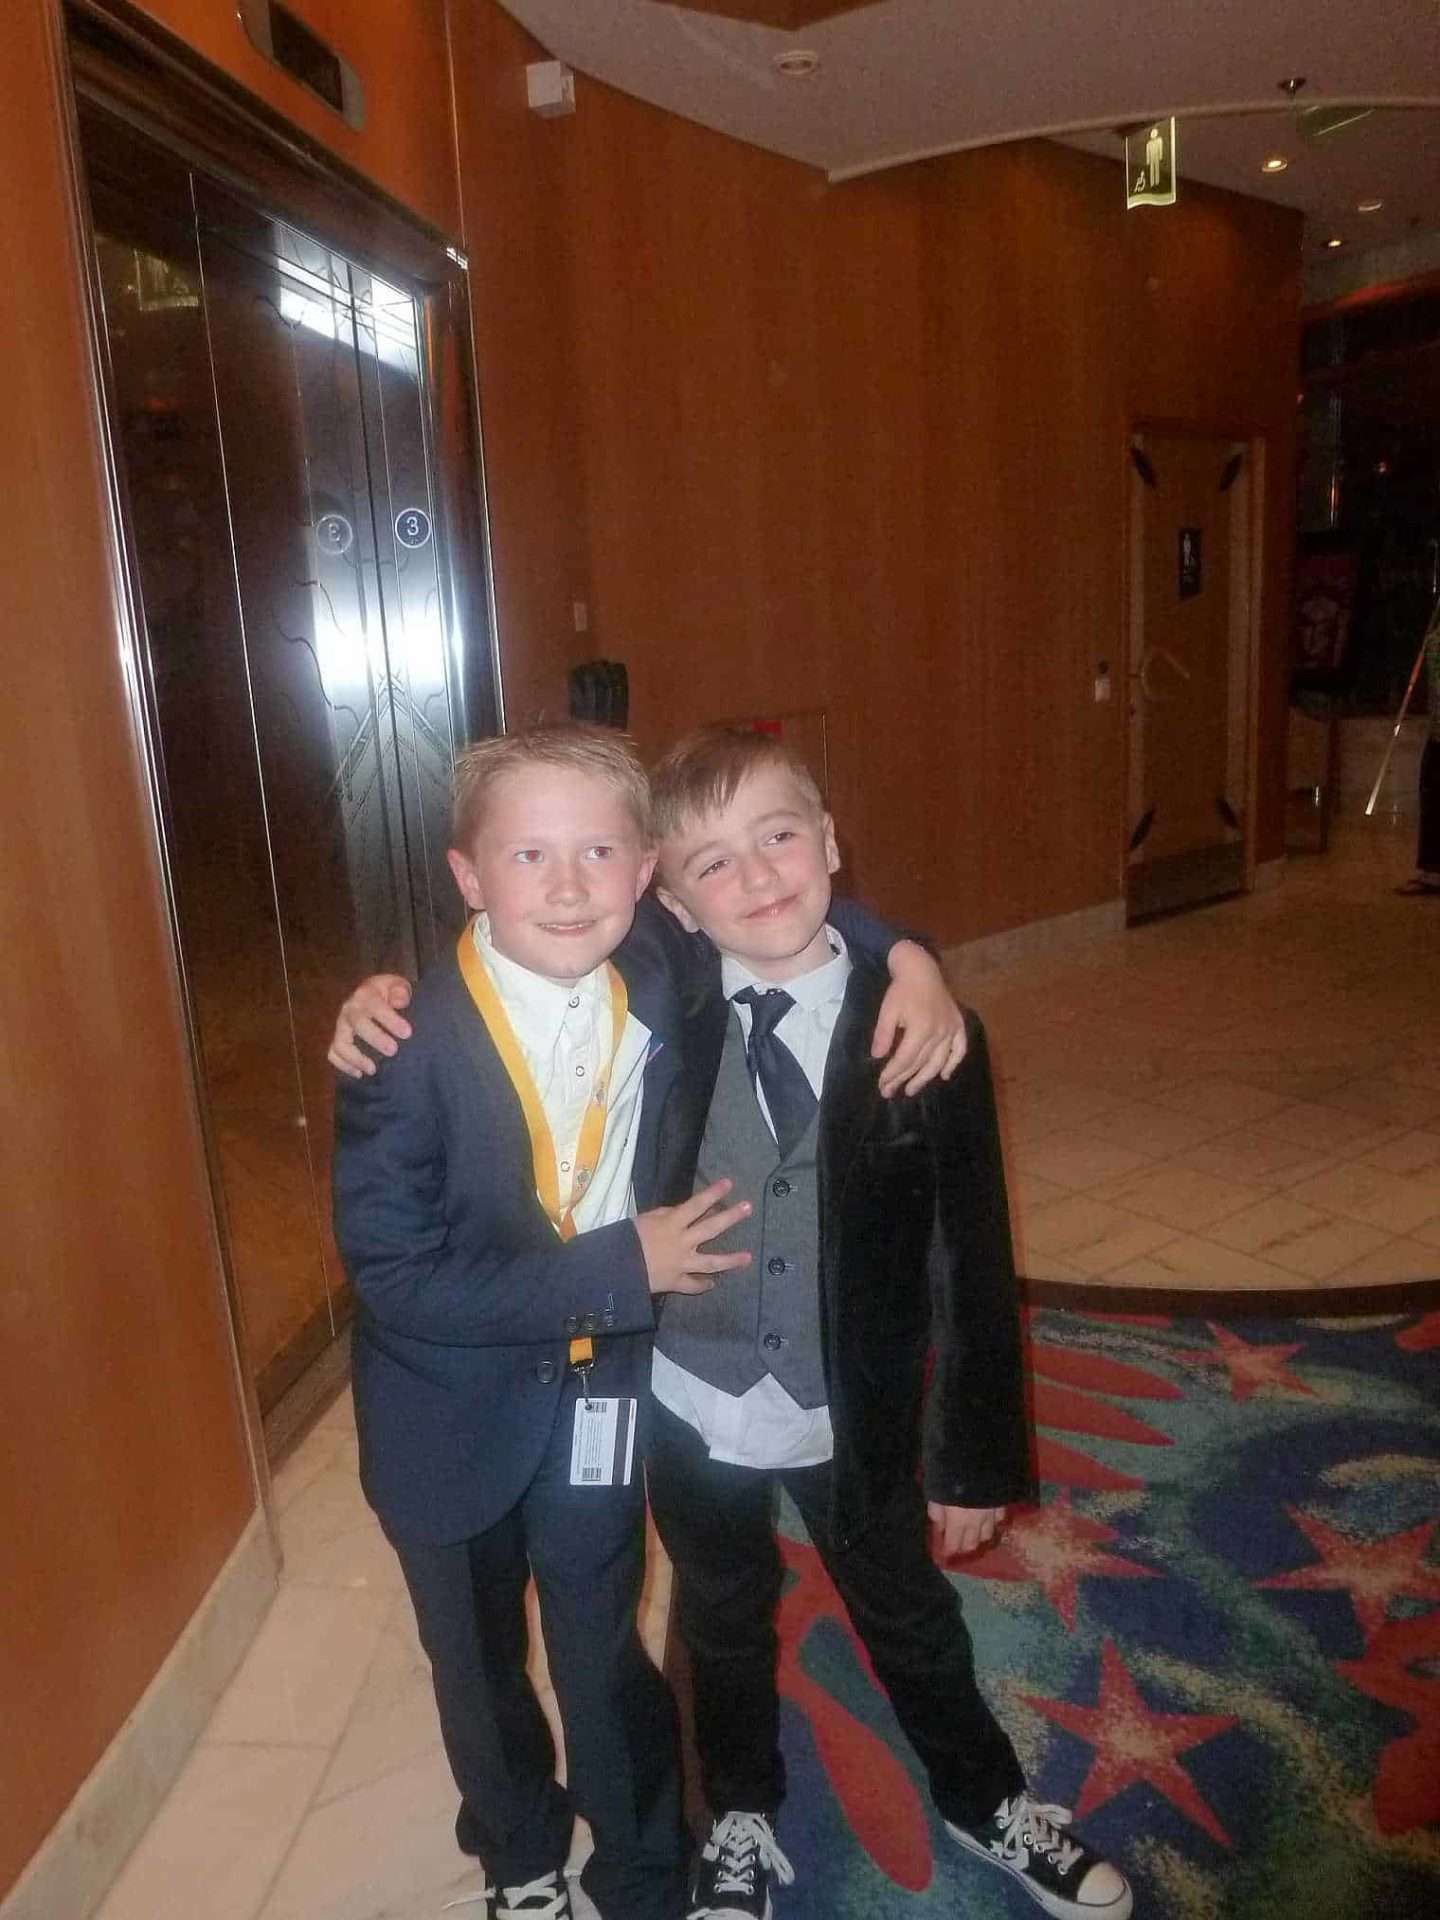 What Do Children Wear On Royal Caribbean Formal Night? Children  are welcomed with smart dresses shorts and collared shirts, however older teens tend to wear trousers and shirts with waistcoats or jackets